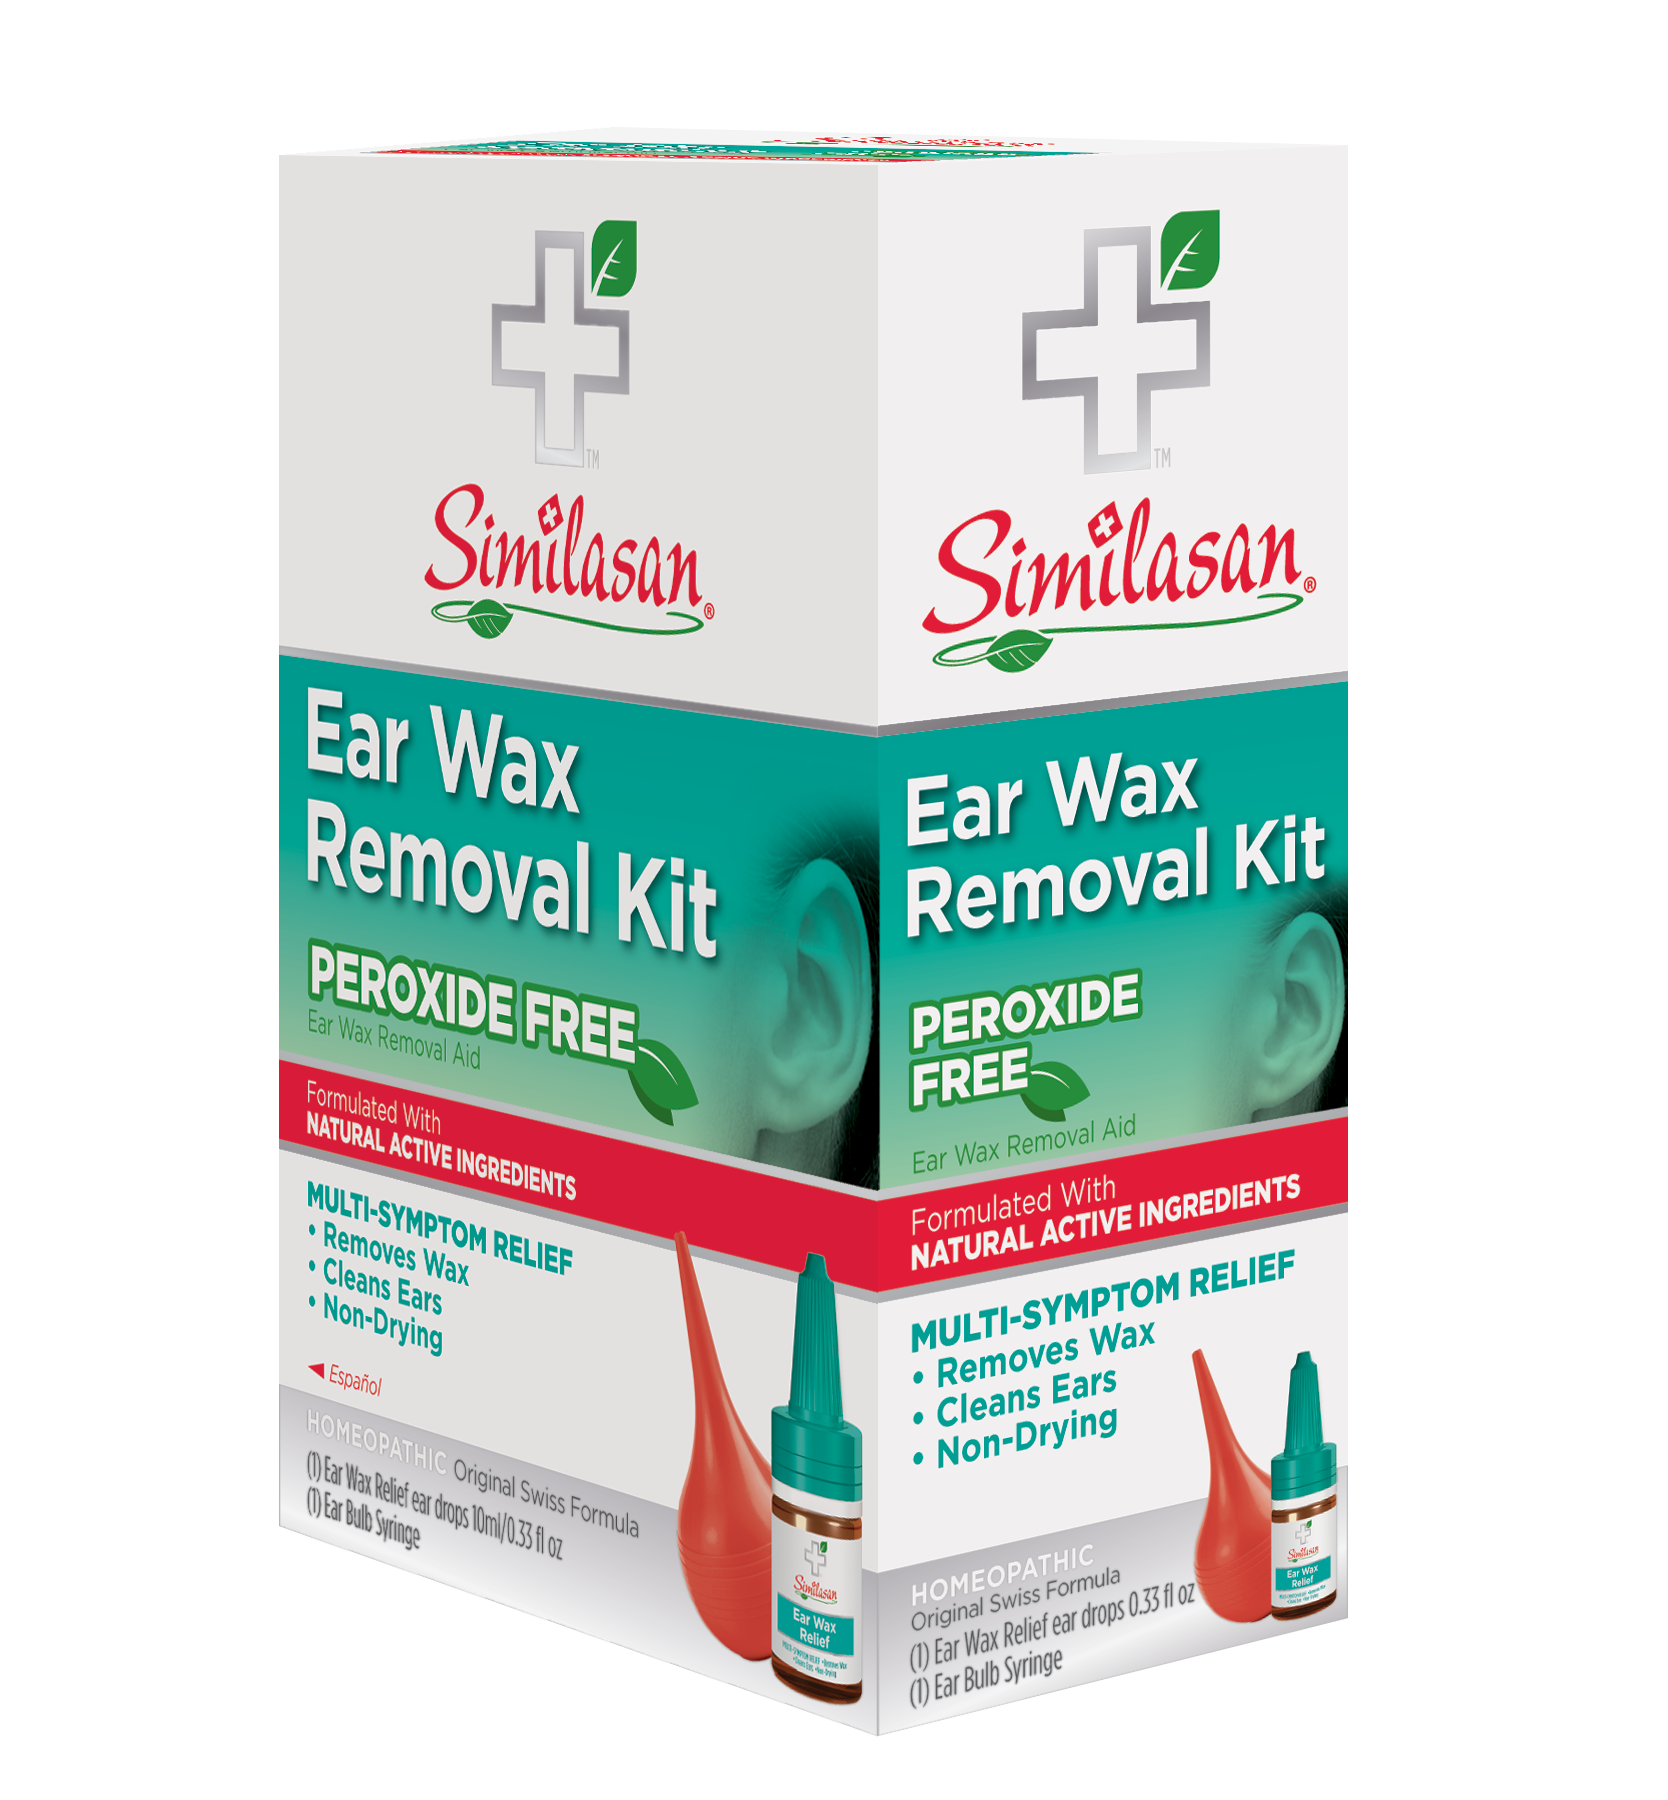 Ear Wax Removal Kit by Similasan Corporation